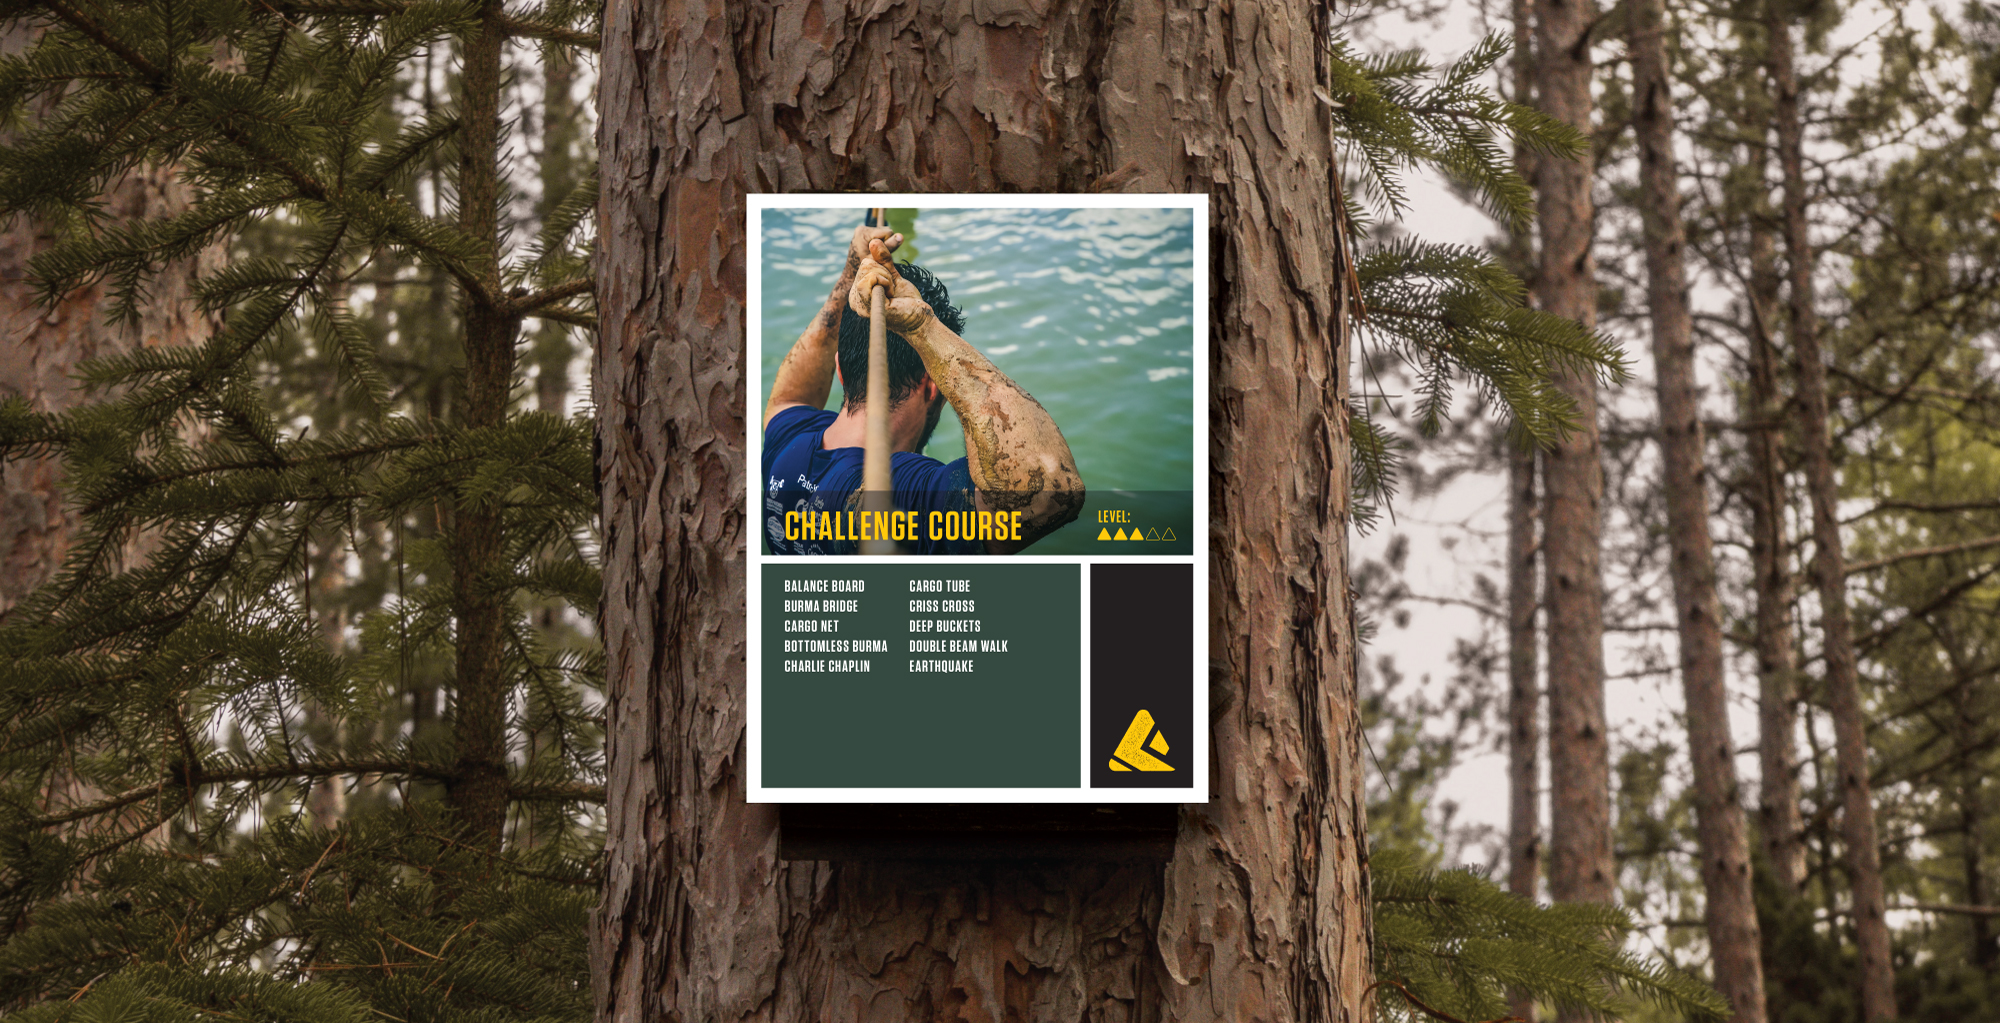 The Forge challenge course signage affixed to a tree trunk